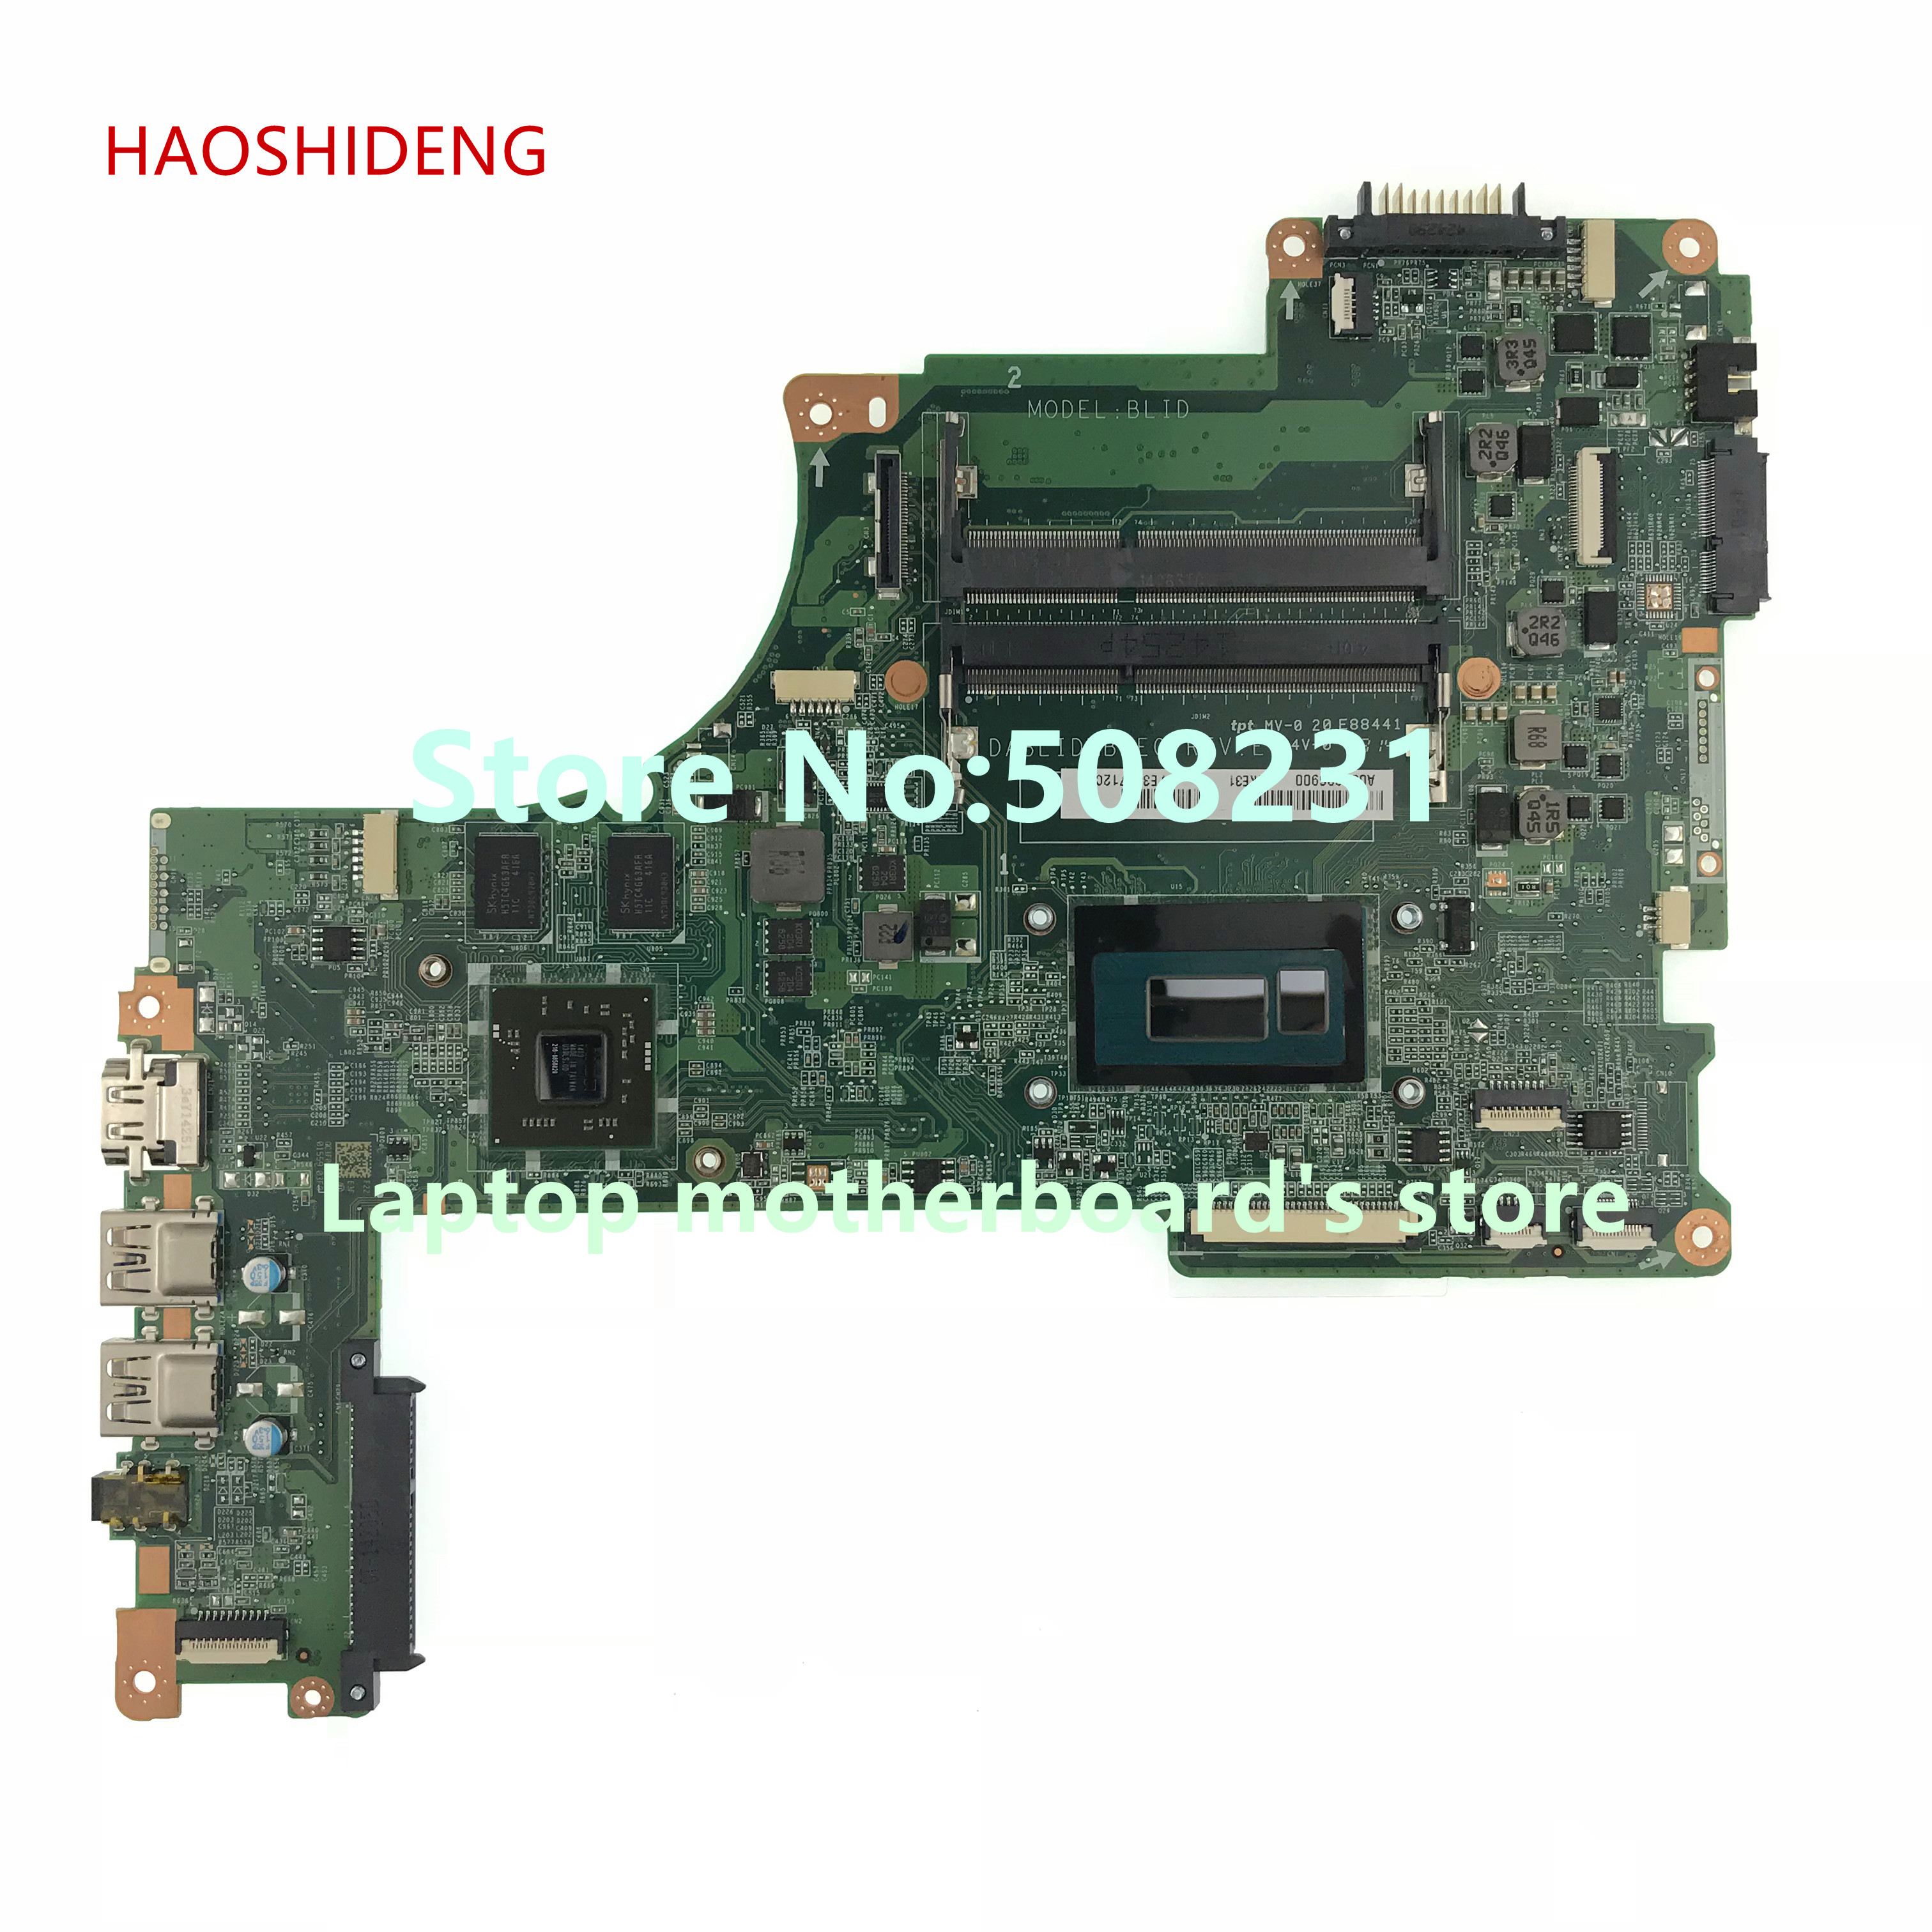 HAOSHIDENG For TOSHIBA Satellite S50 S55 S50T-B S55-B motherboard A000296900 DABLIDMB8E0 with I5-4210U CPU fully Tested h000055980 for toshiba satellite s50 s55 s55 a s55t series motherboard hm87 all functions 100% fully tested